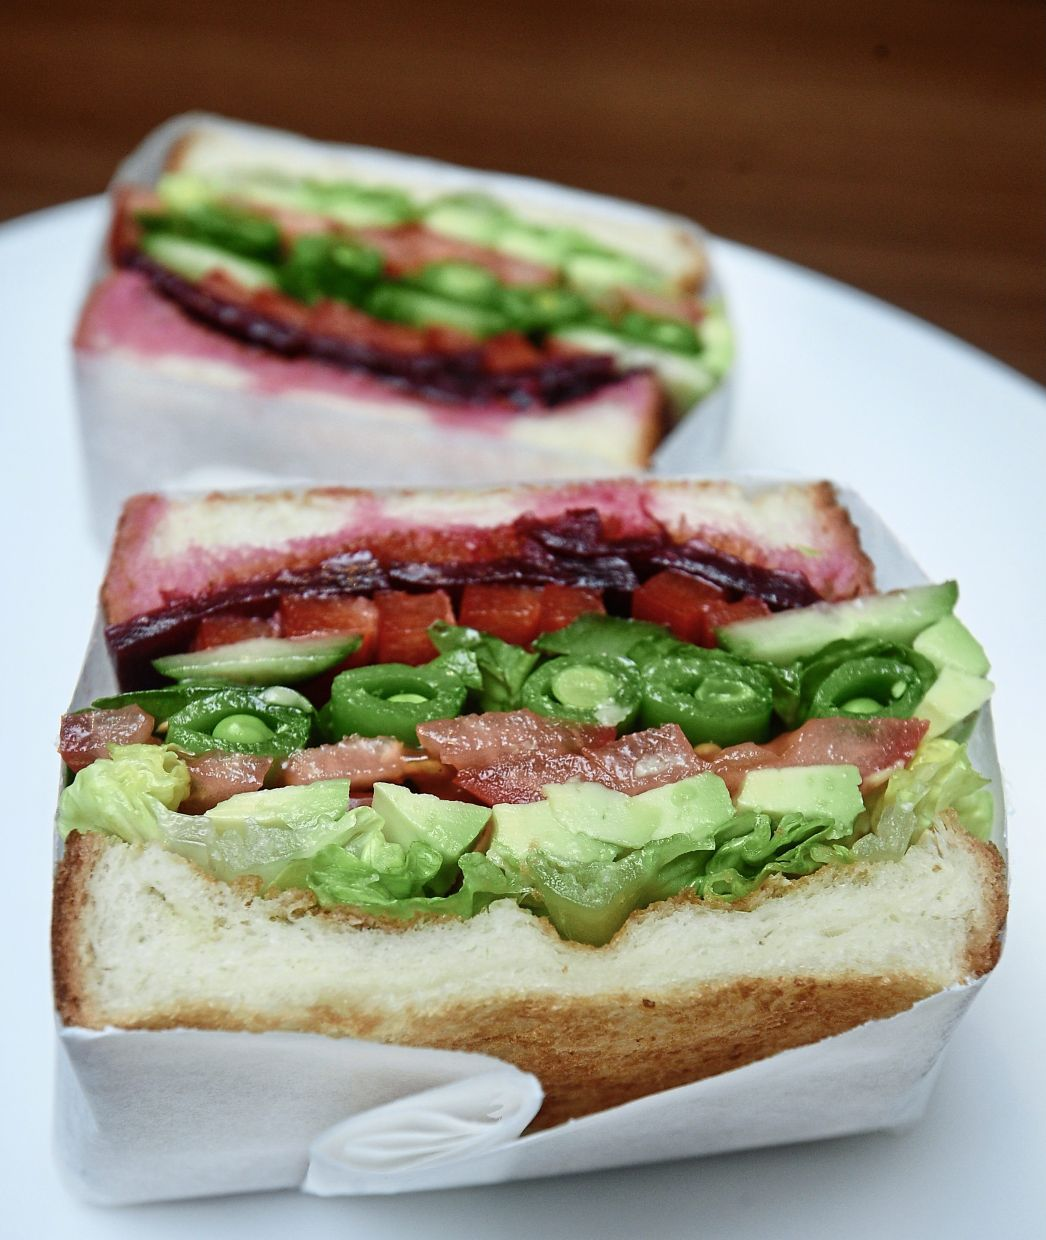 Eight-type vegetable sandwich filled with beetroot, cucumber, avocado, capsicum, tomatoes,  lettuce, snow pea and baby spinach with French dressing. — Photos: SIA HONG KIAU/The Star